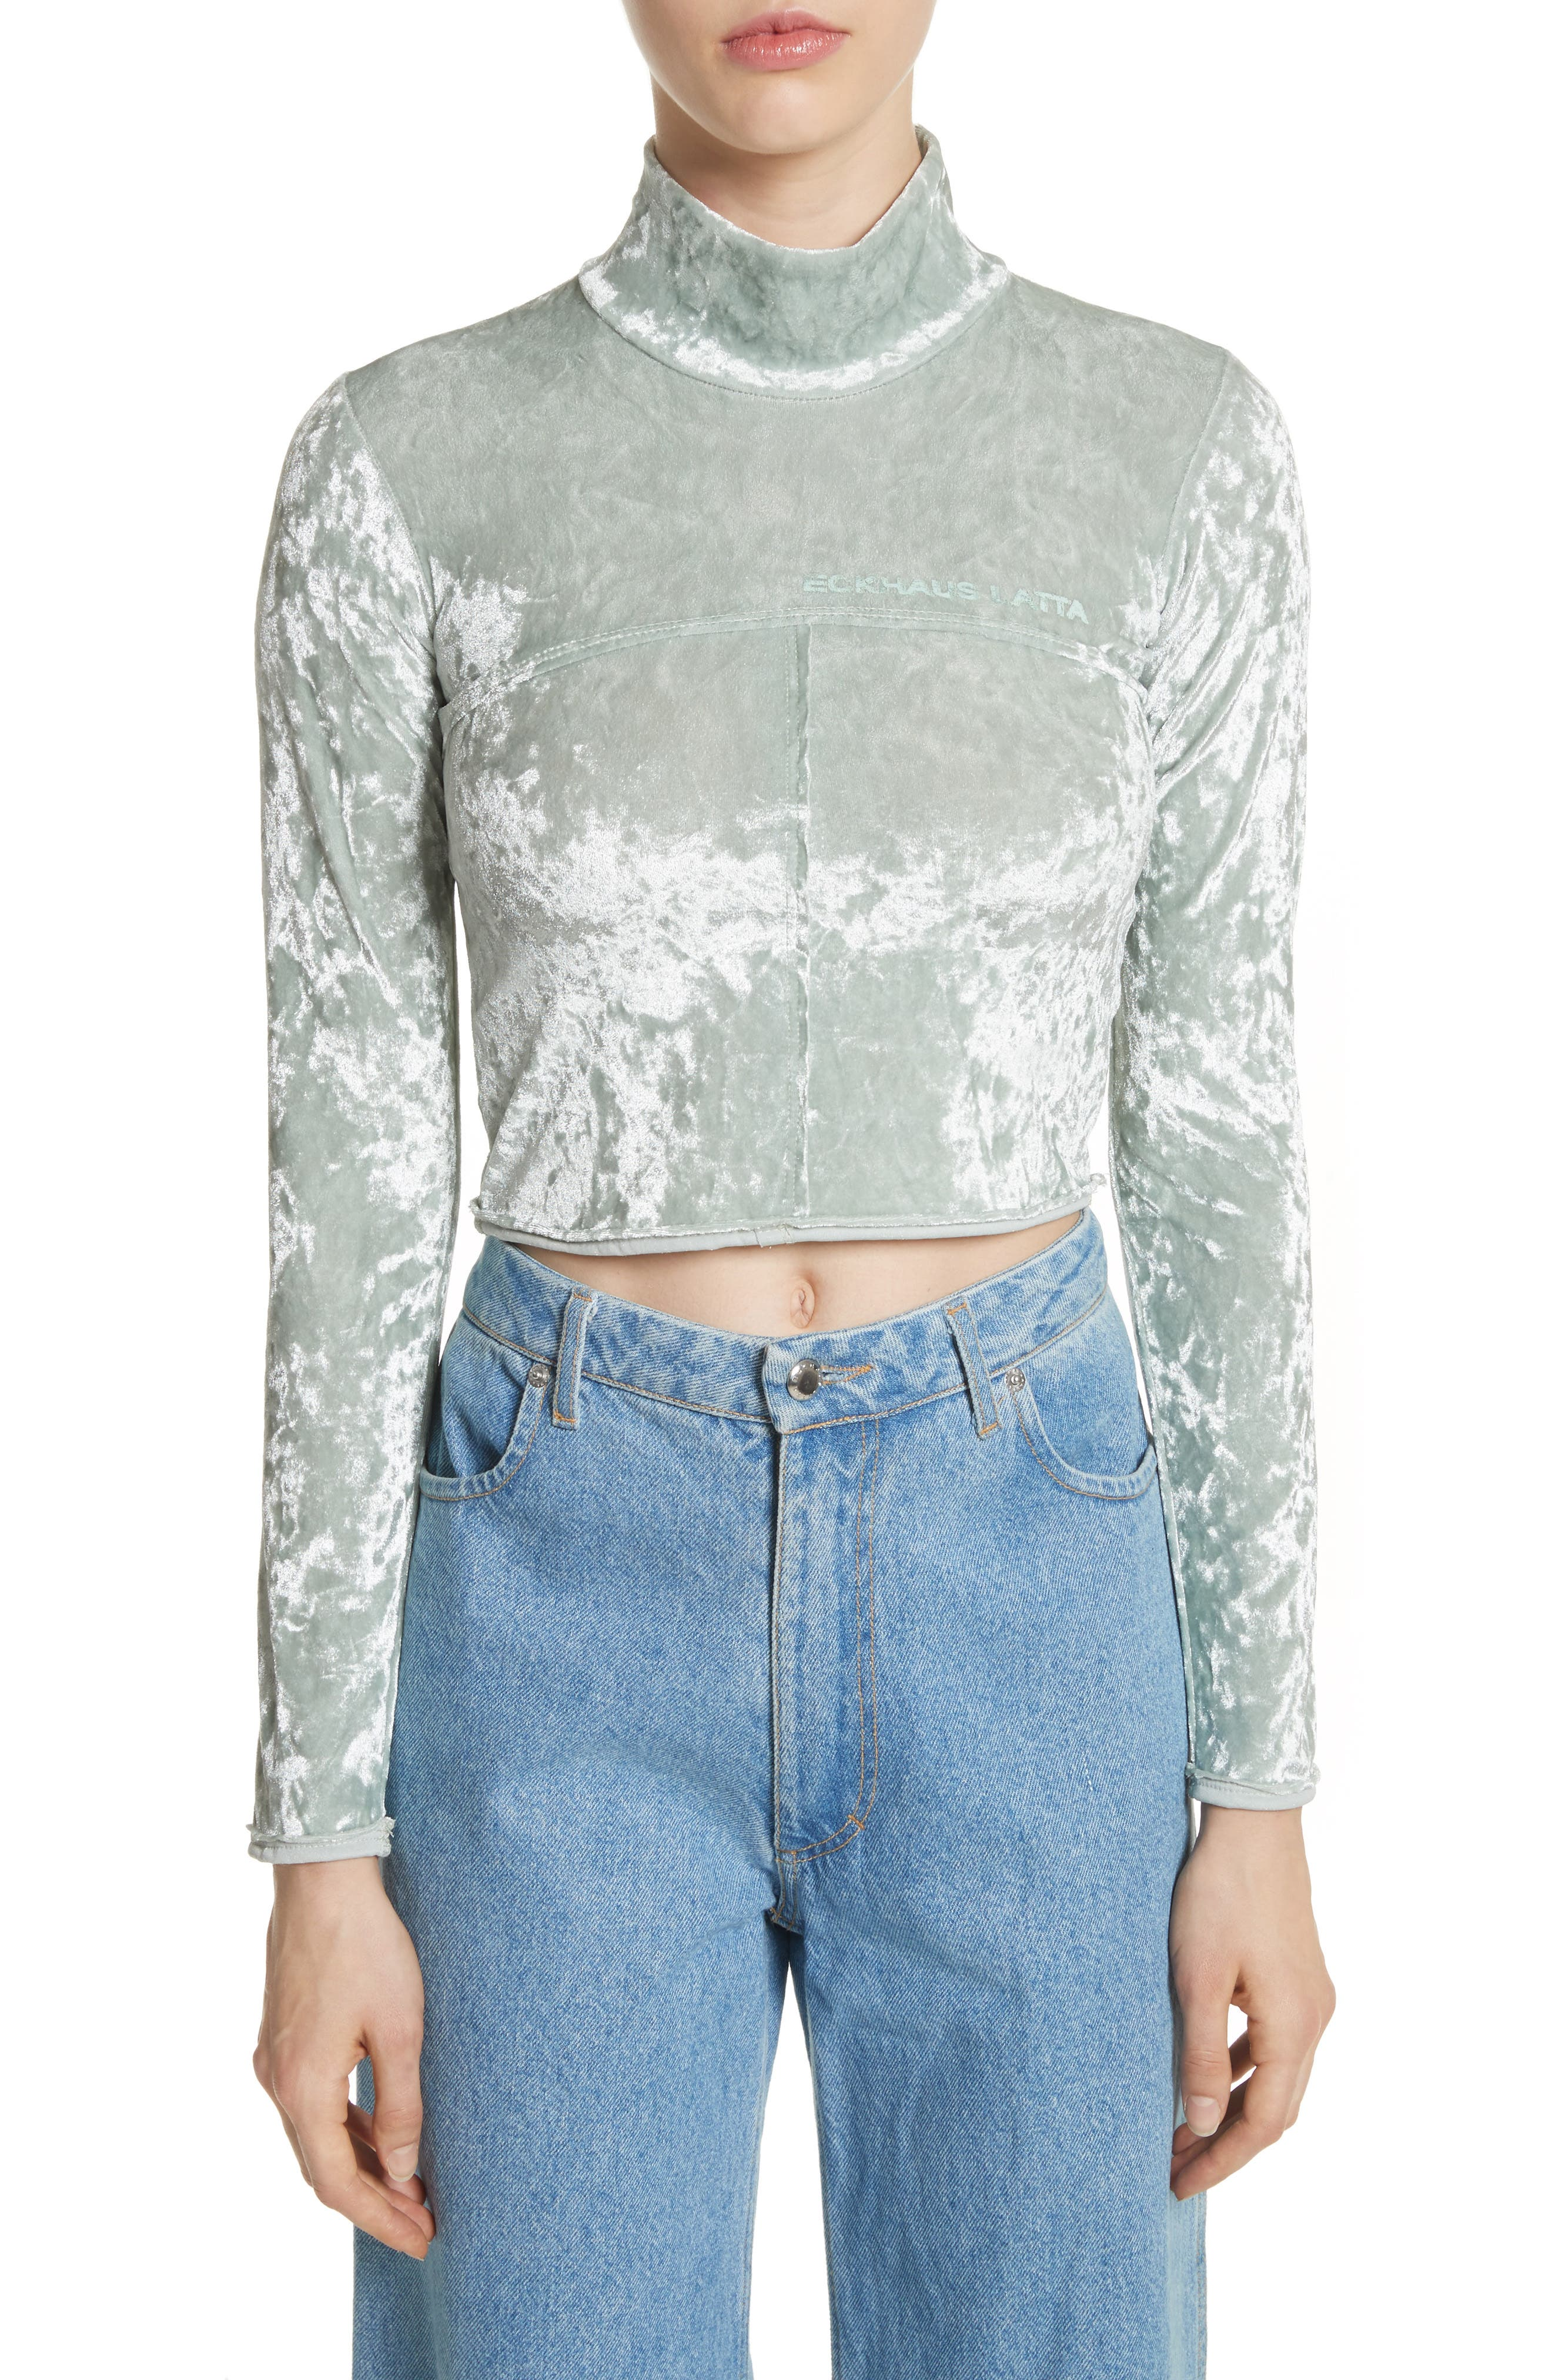 Lapped Baby Turtleneck,                             Main thumbnail 1, color,                             Ice